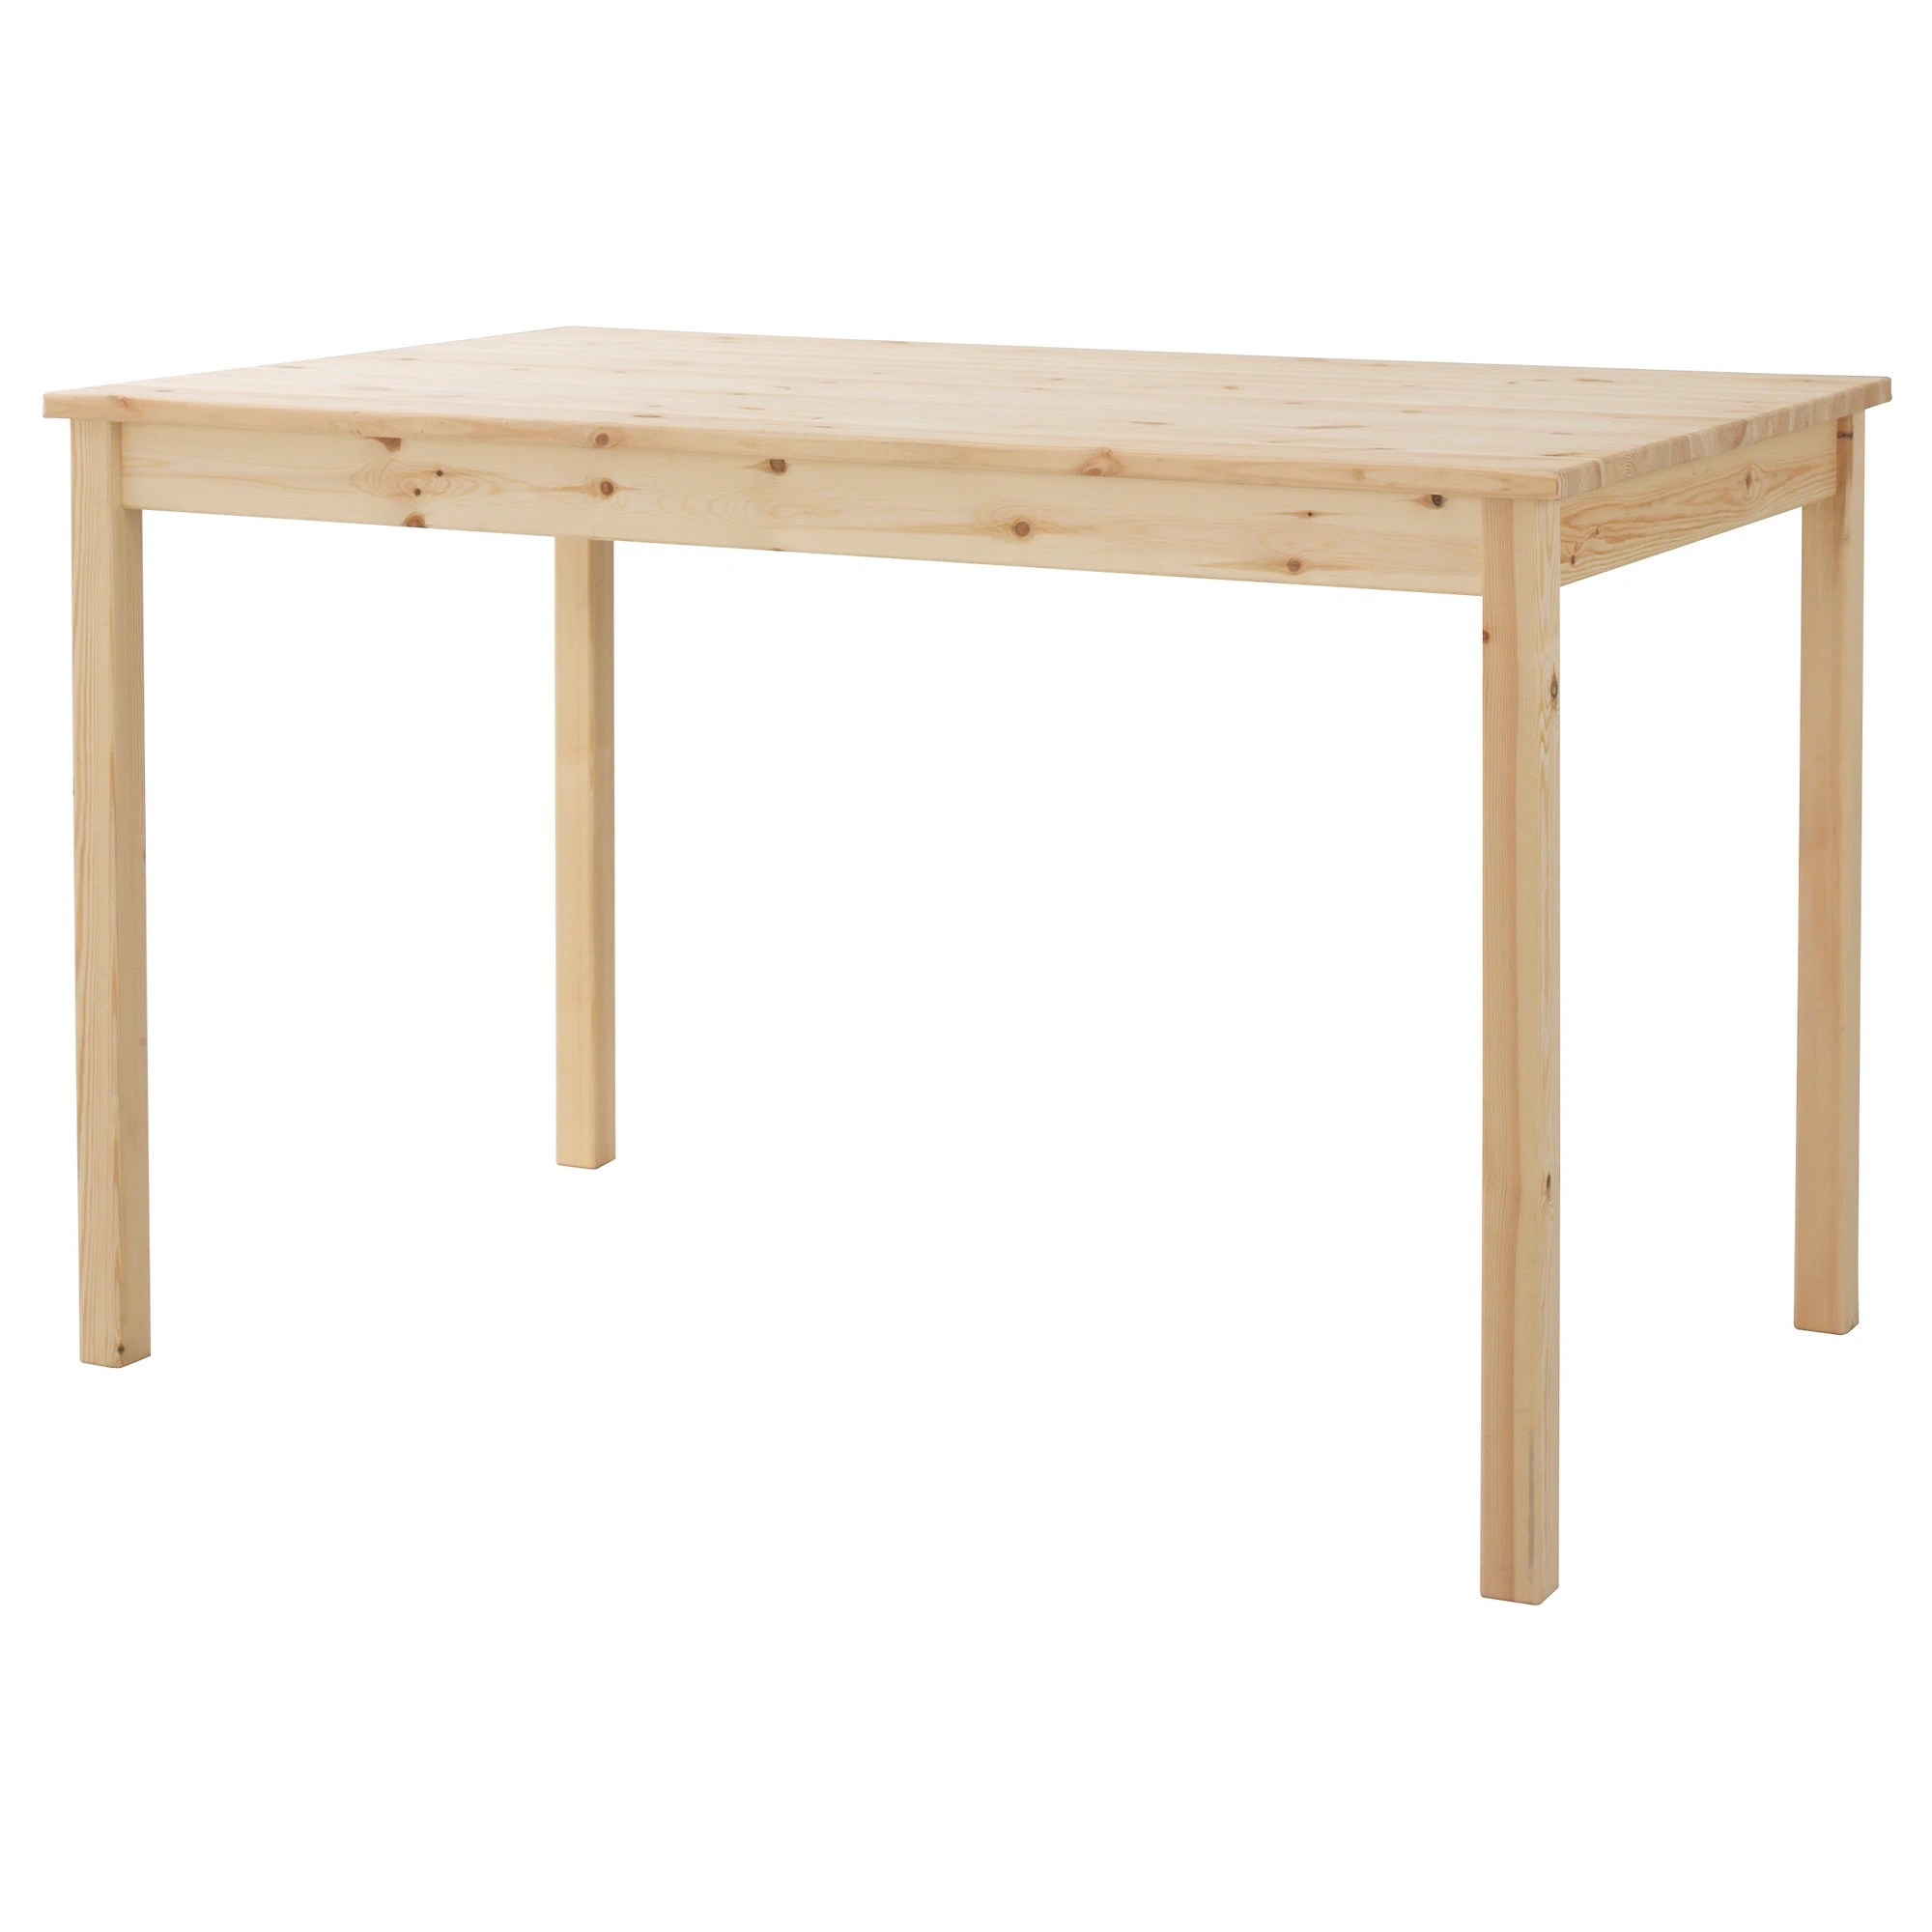 Ikea Table Ingo Table Pine